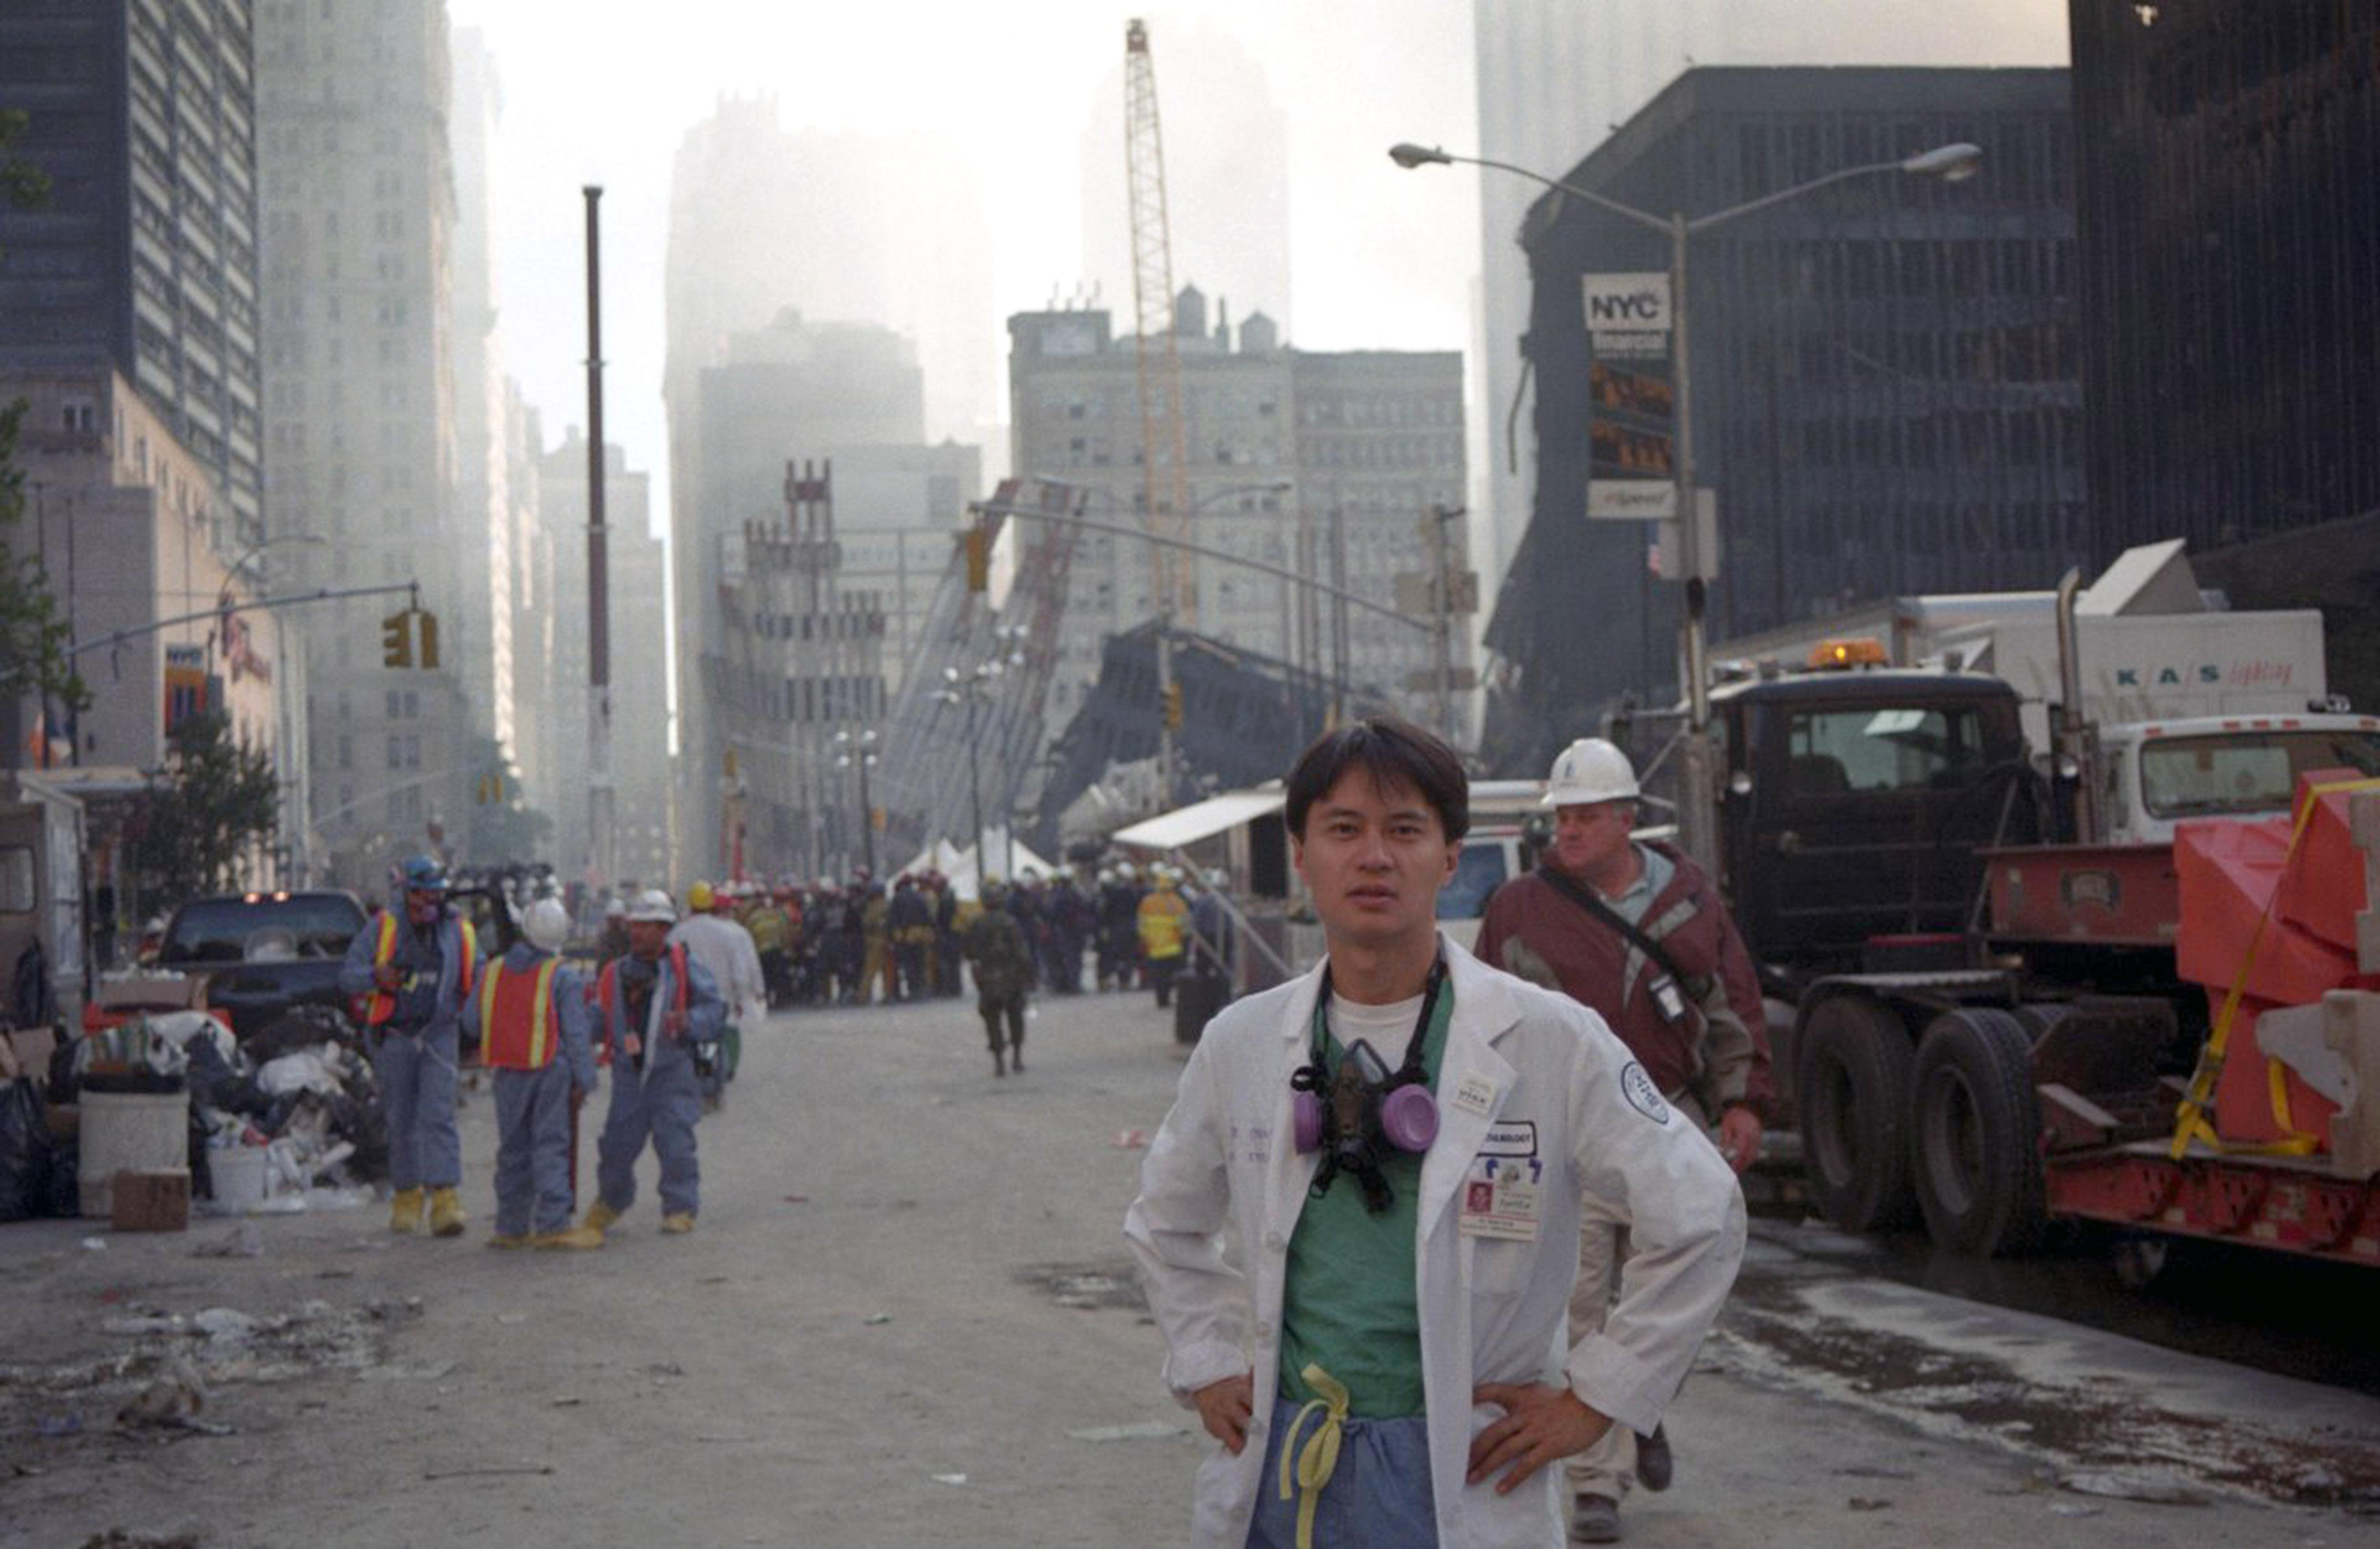 Dr Emil Chynn at the scene during the tragedy. (Caters)